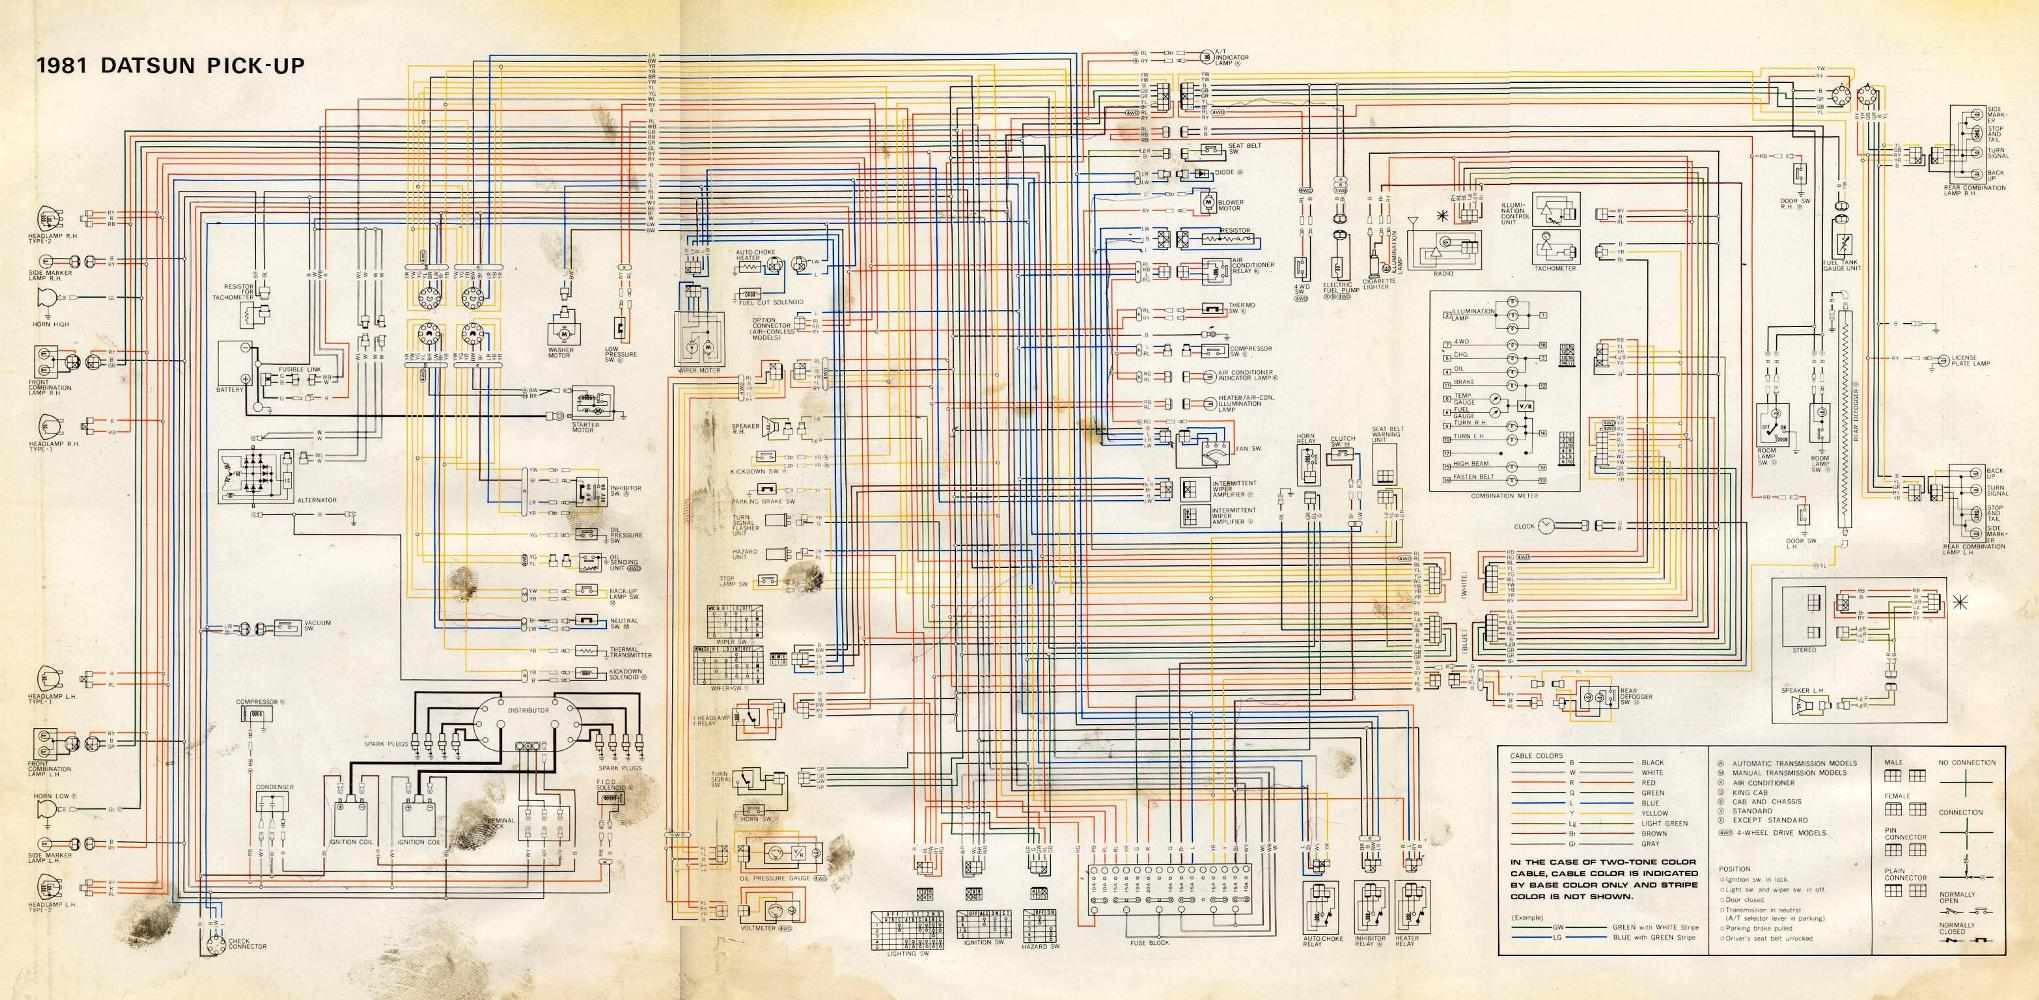 Image 1974 Ford Ignition Wiring Diagram Download